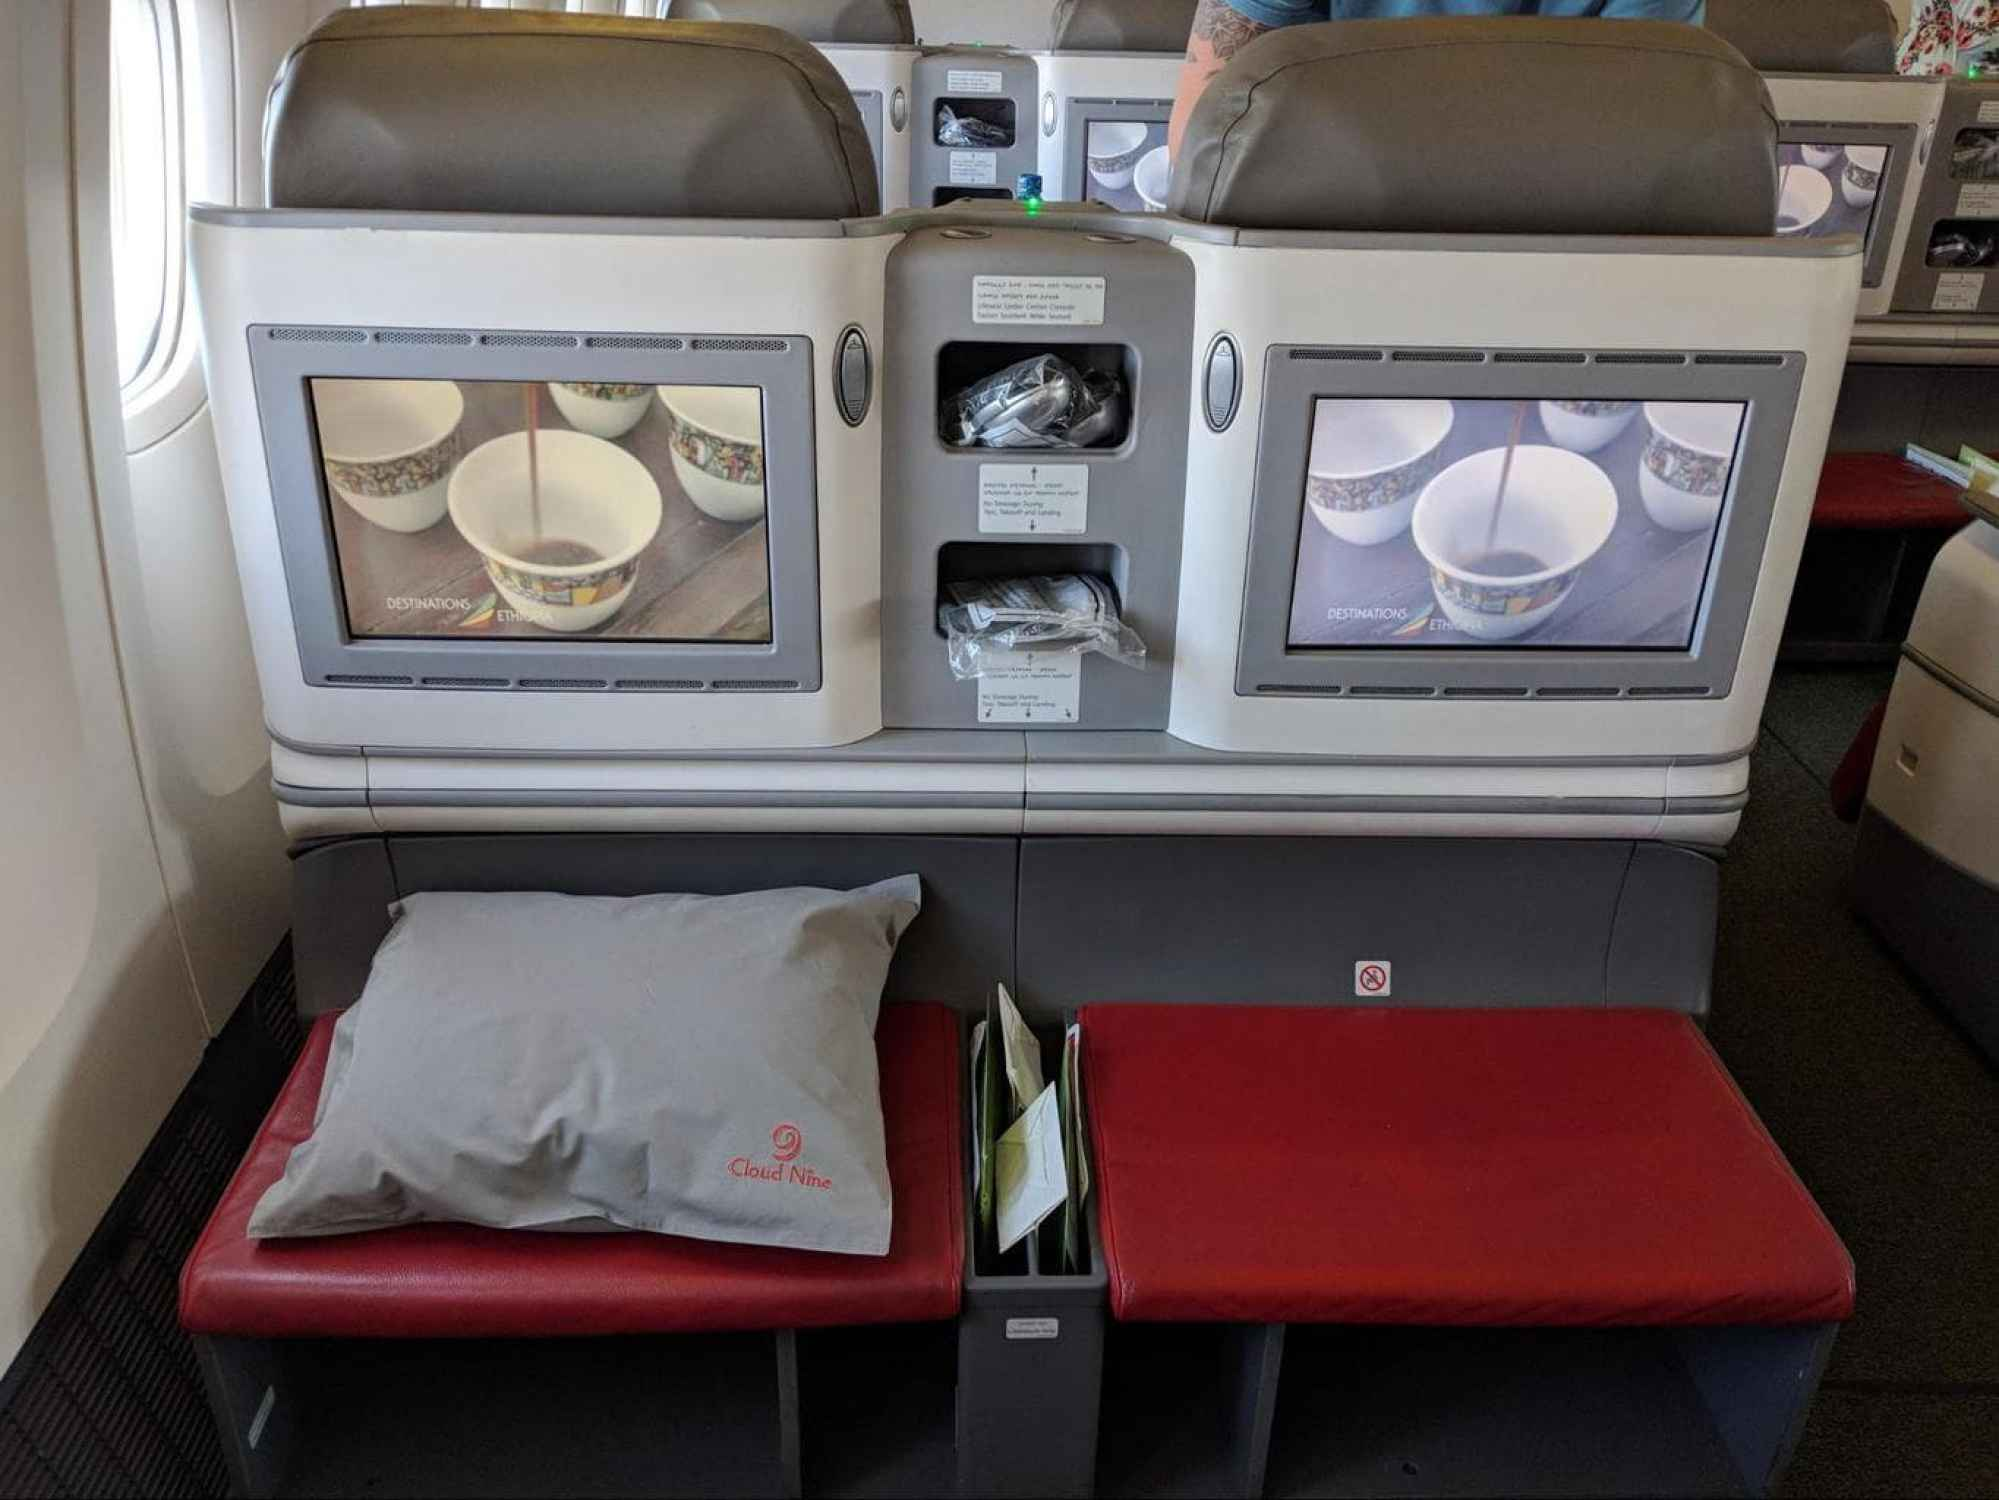 Footrest and TV on Ethiopian Airlines Business Class Boeing 777-300 entertainment